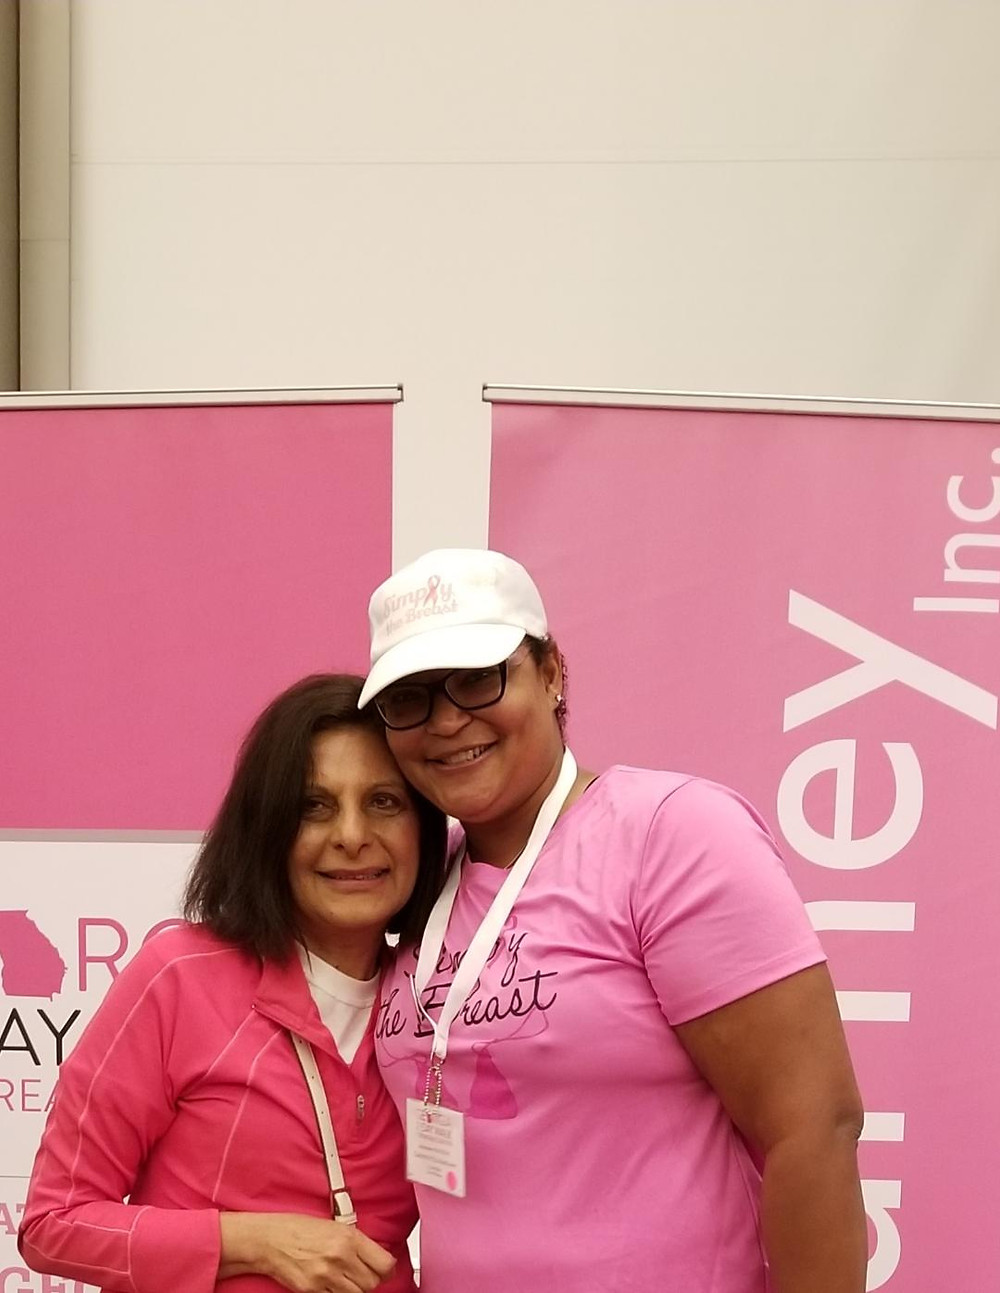 Dr. Harjee is a breast cancer survivor & co-founder of Clarkston Community Health Center